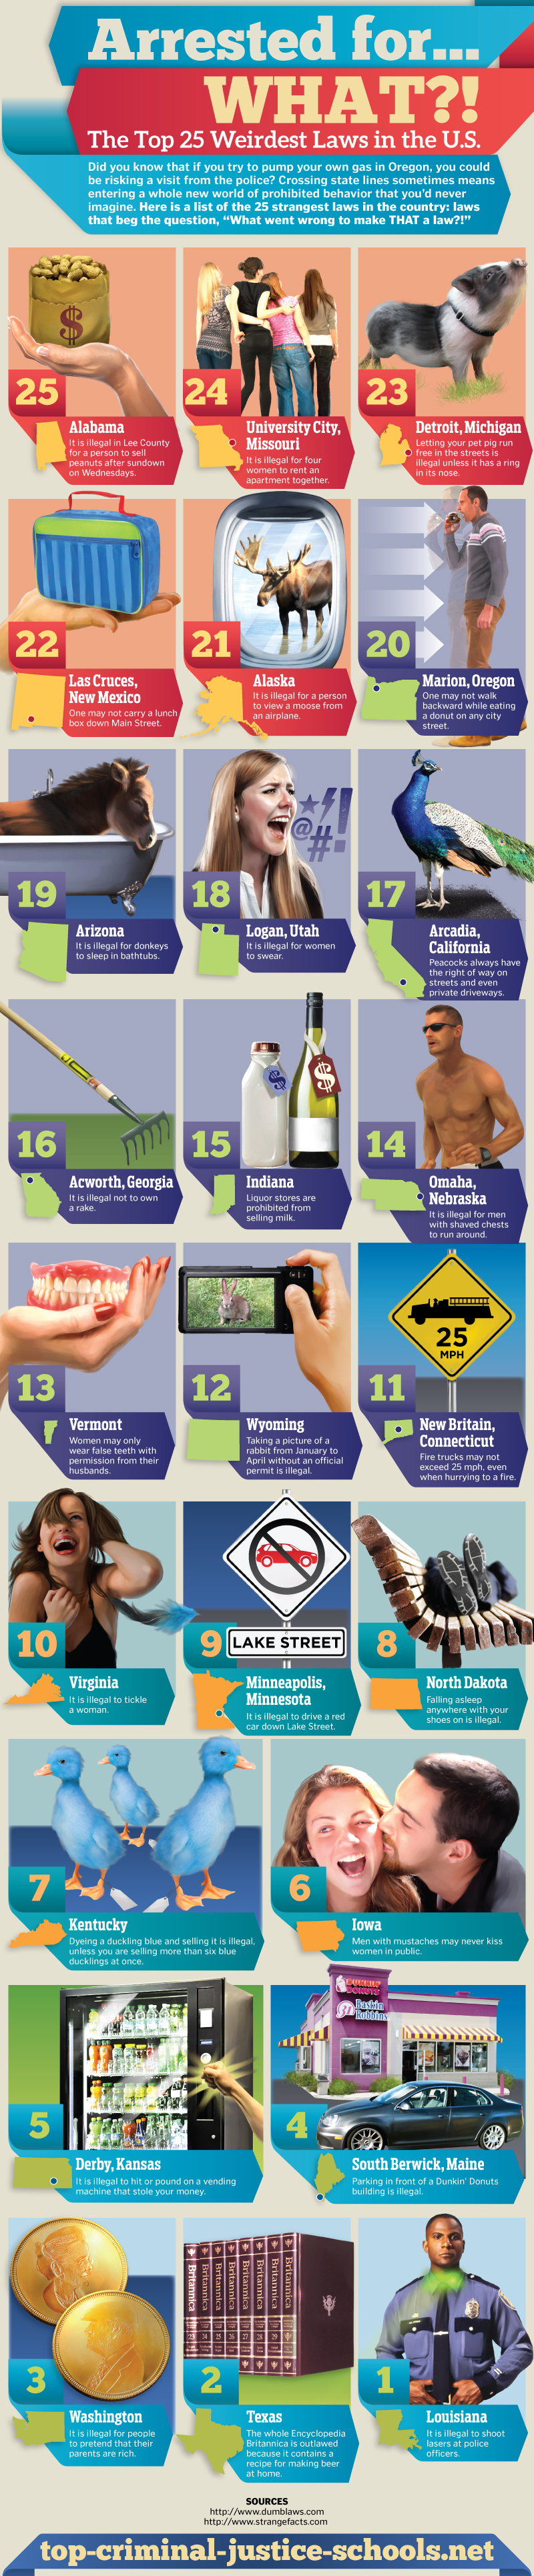 Arrested for What? The Top 25 Weirdest Laws in the U.S.